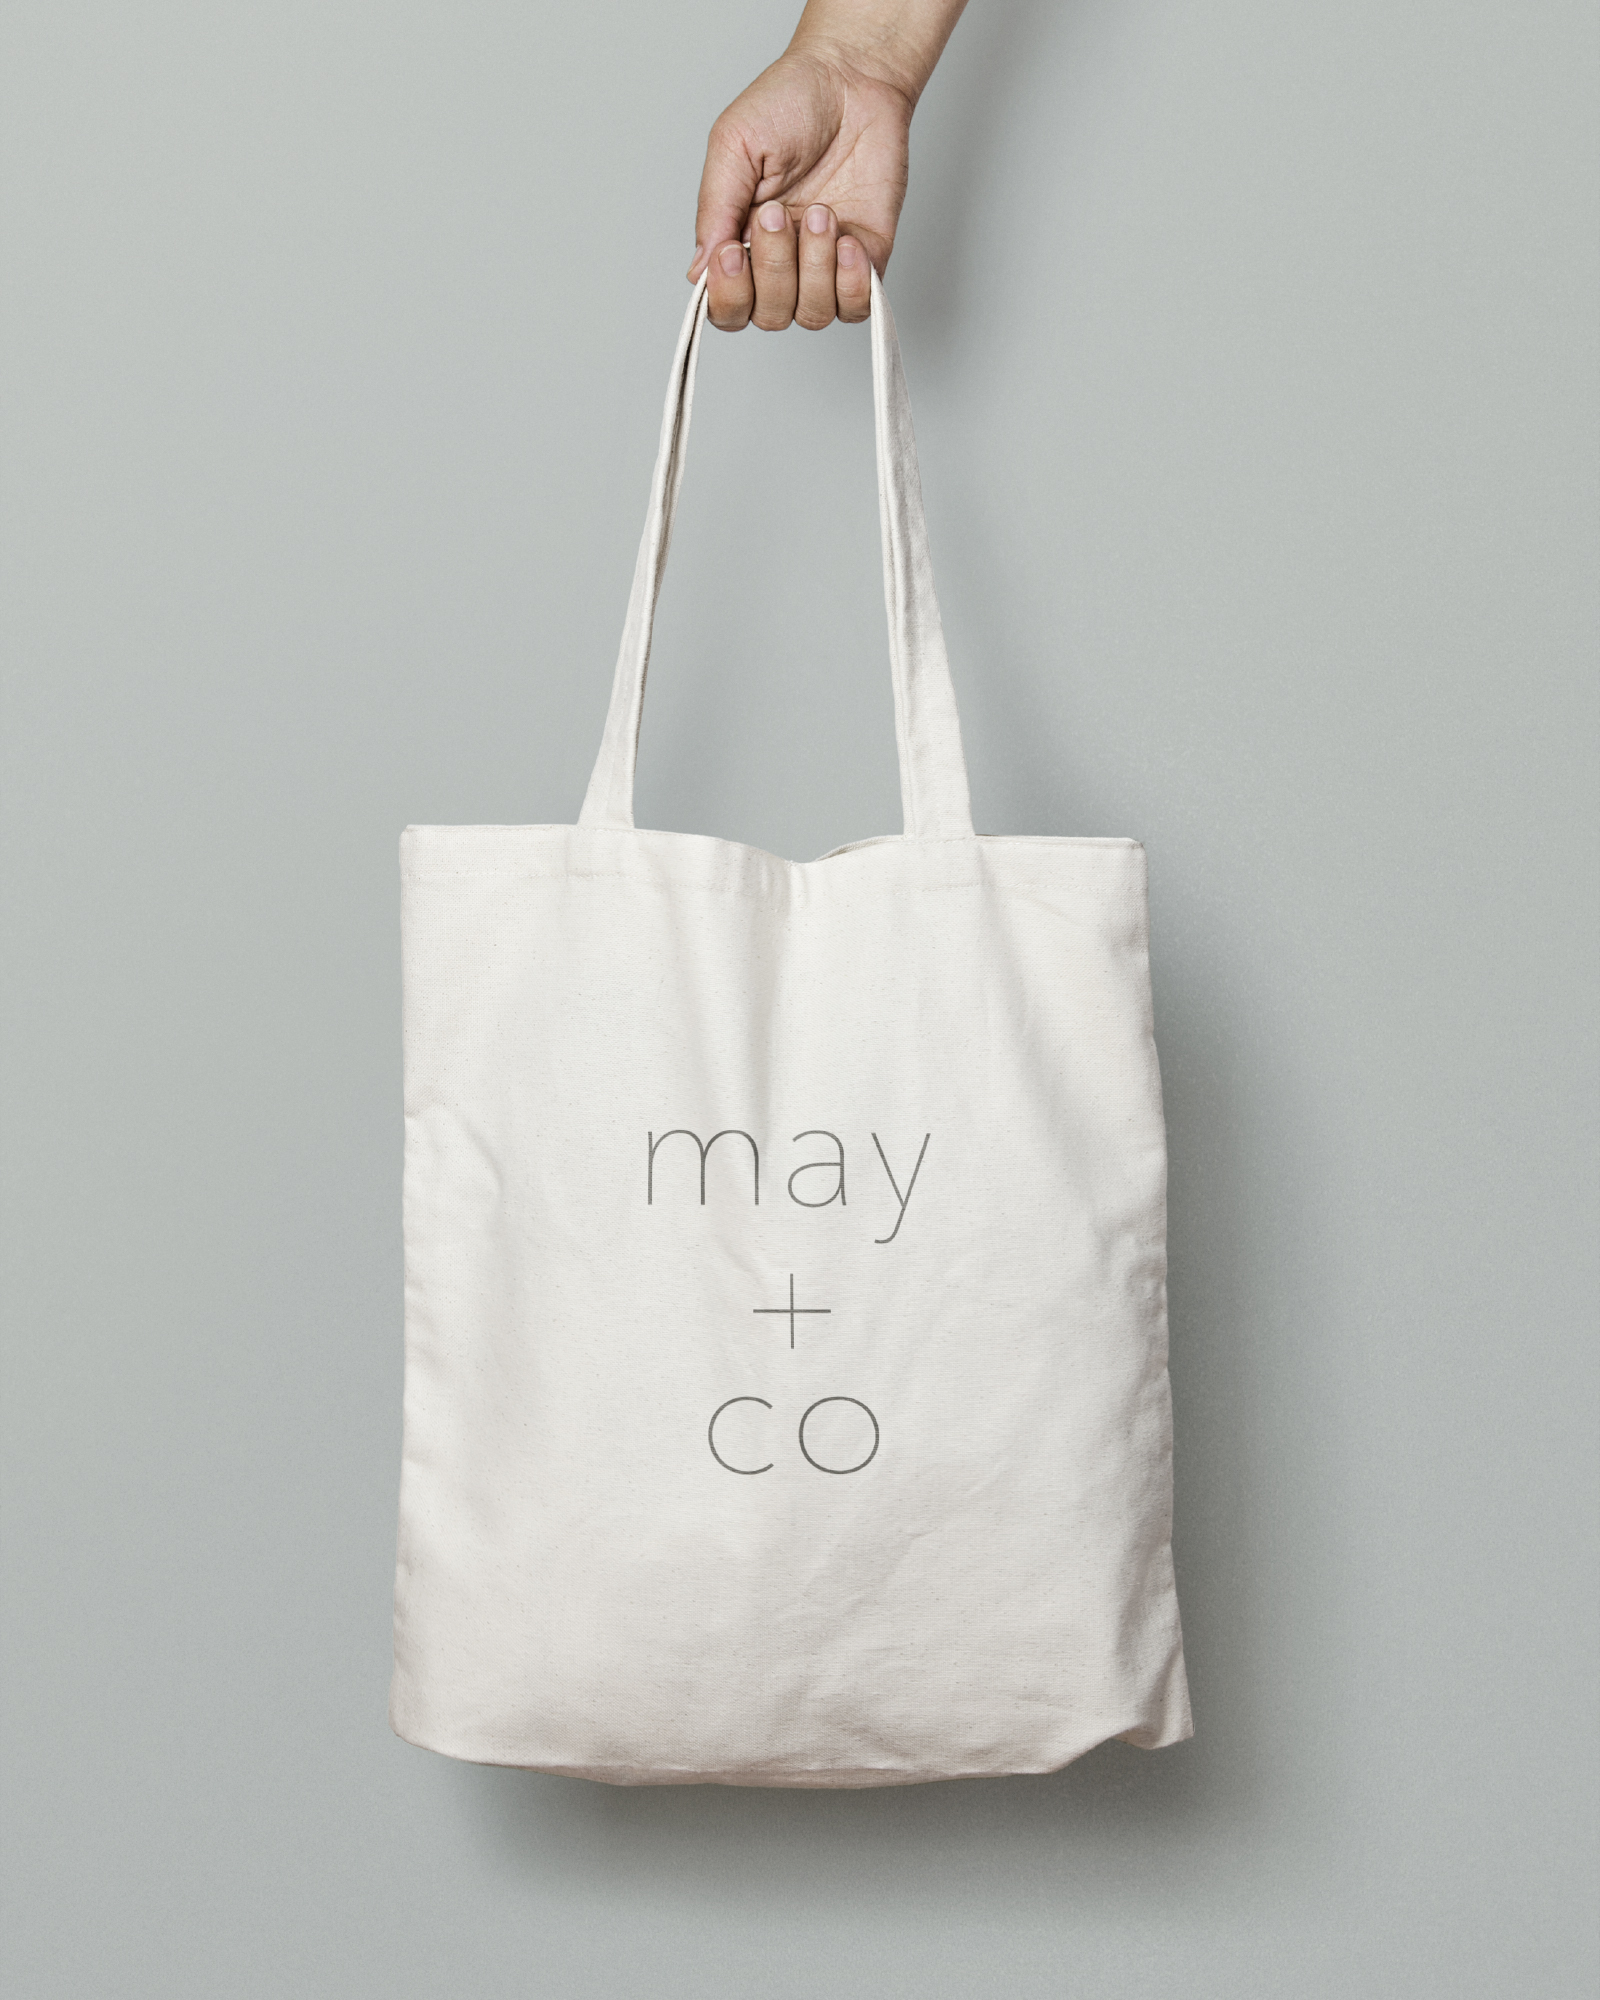 The May + Co logo on a tote bag